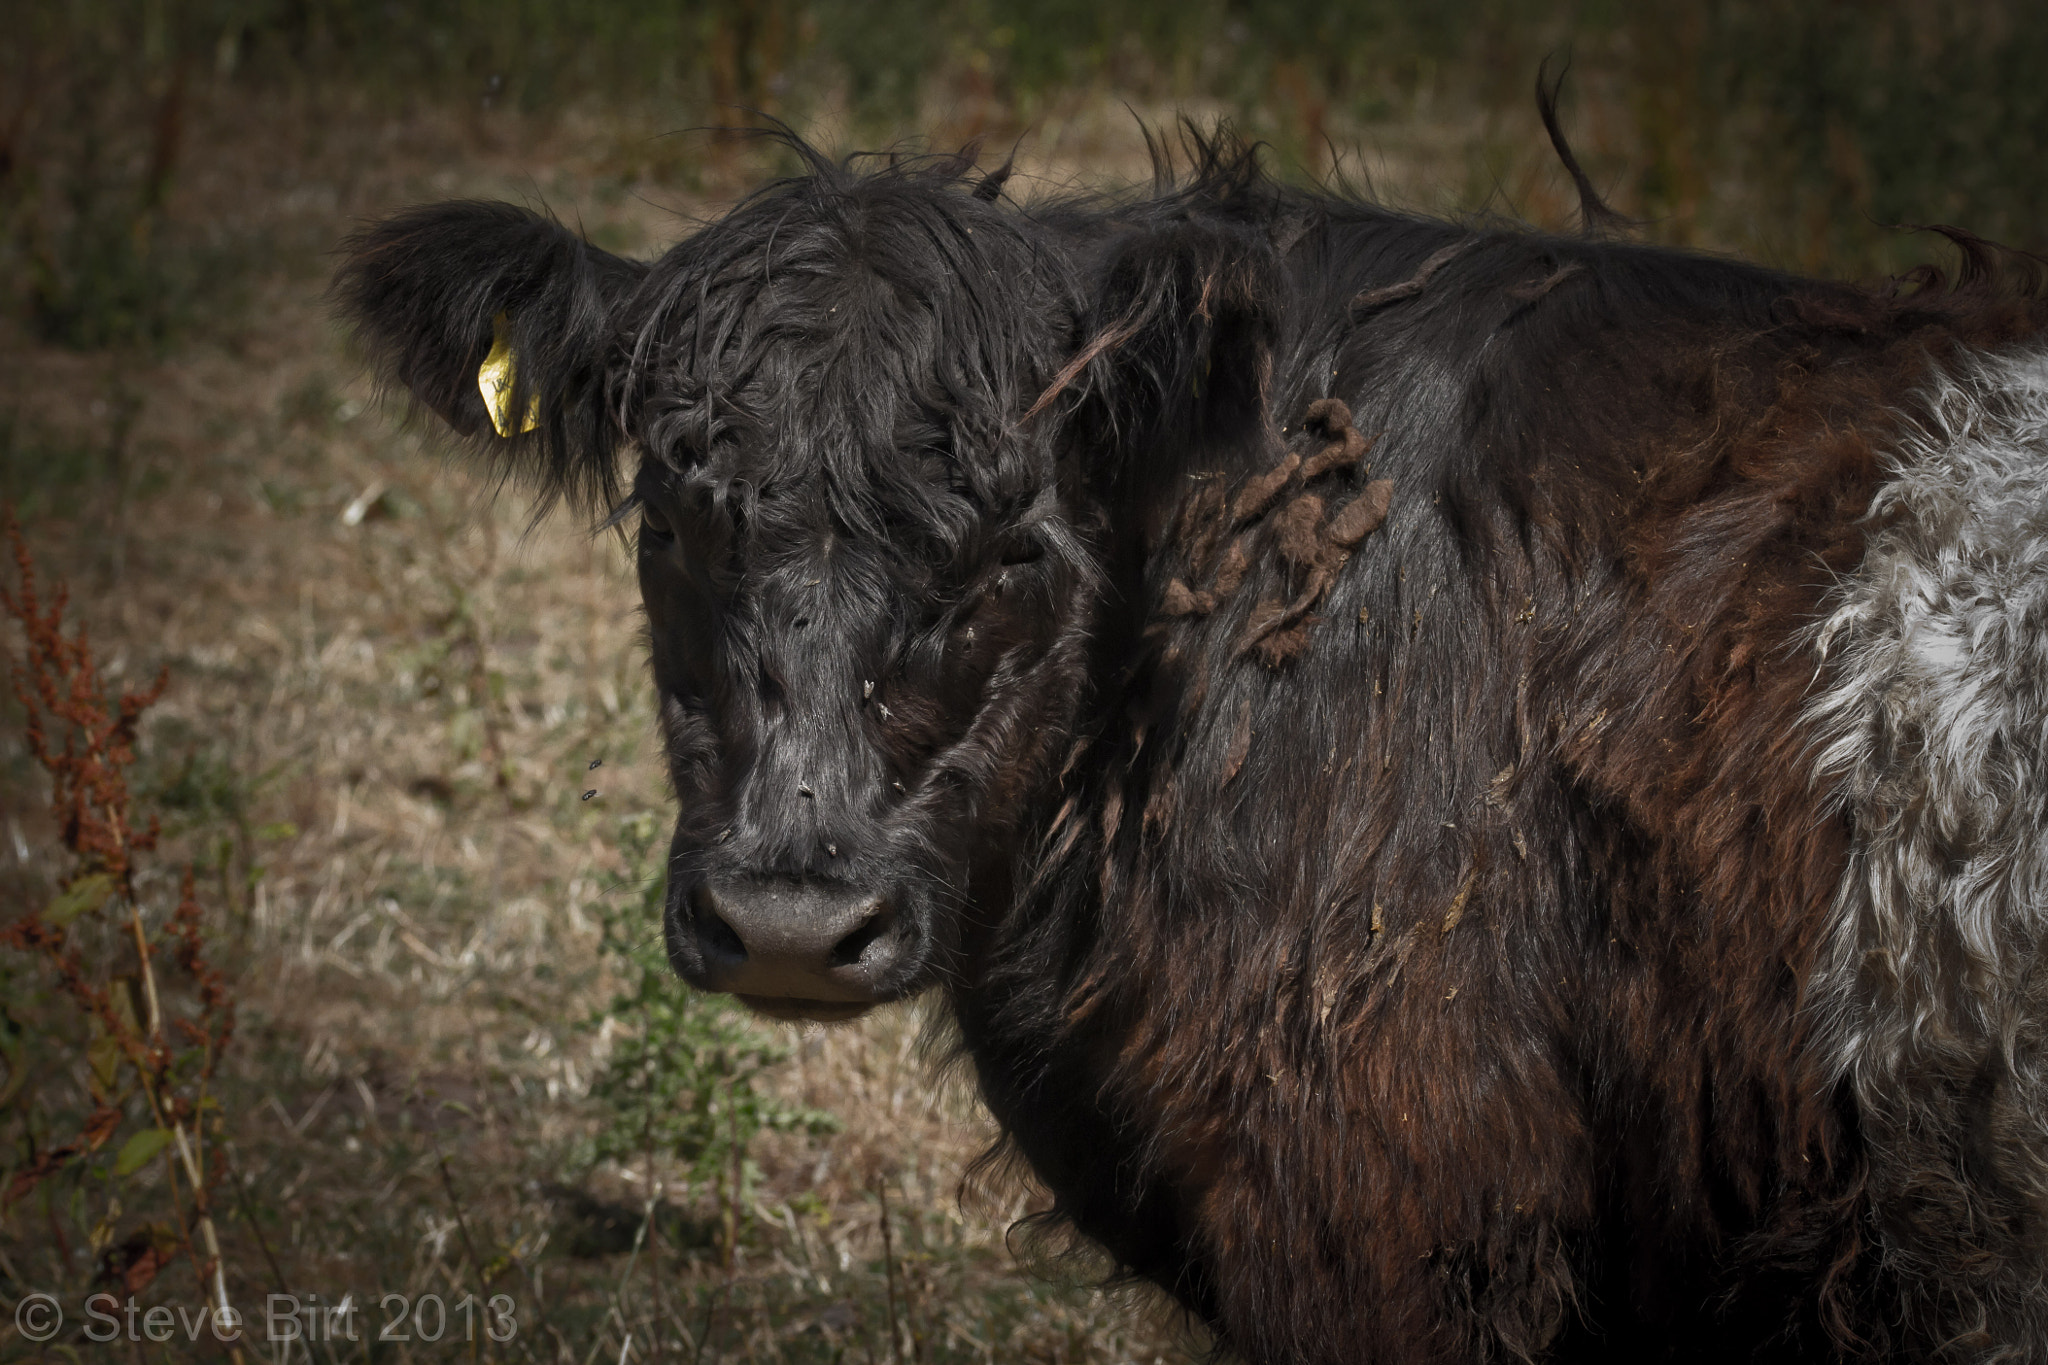 Photograph Belted Galloway by Steve Birt on 500px